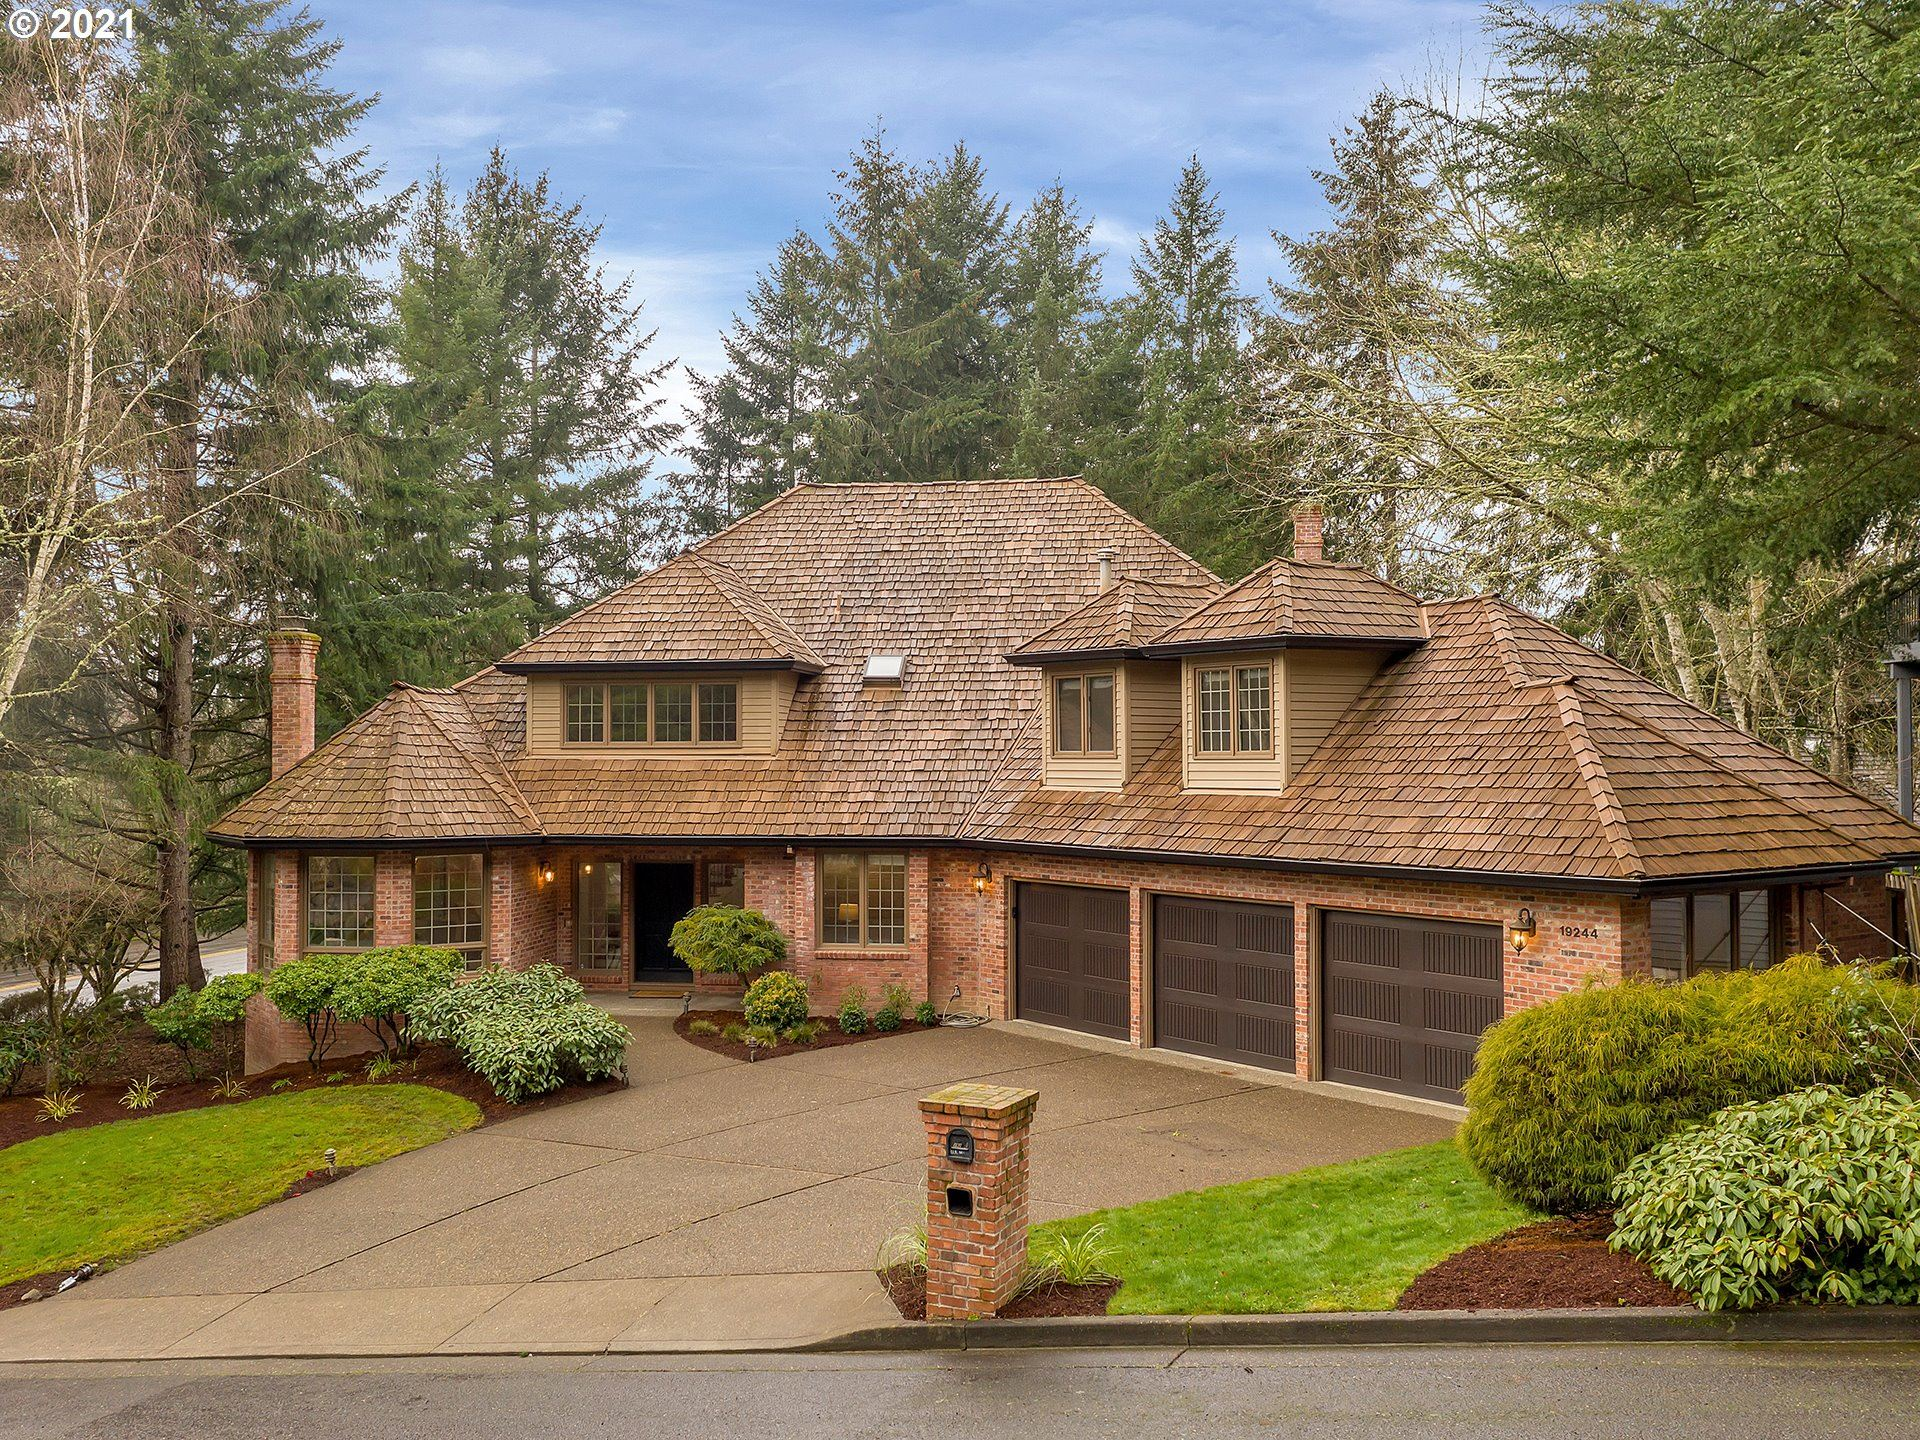 Photo for 19244 35TH PL, Lake Oswego, OR 97034 (MLS # 21336820)